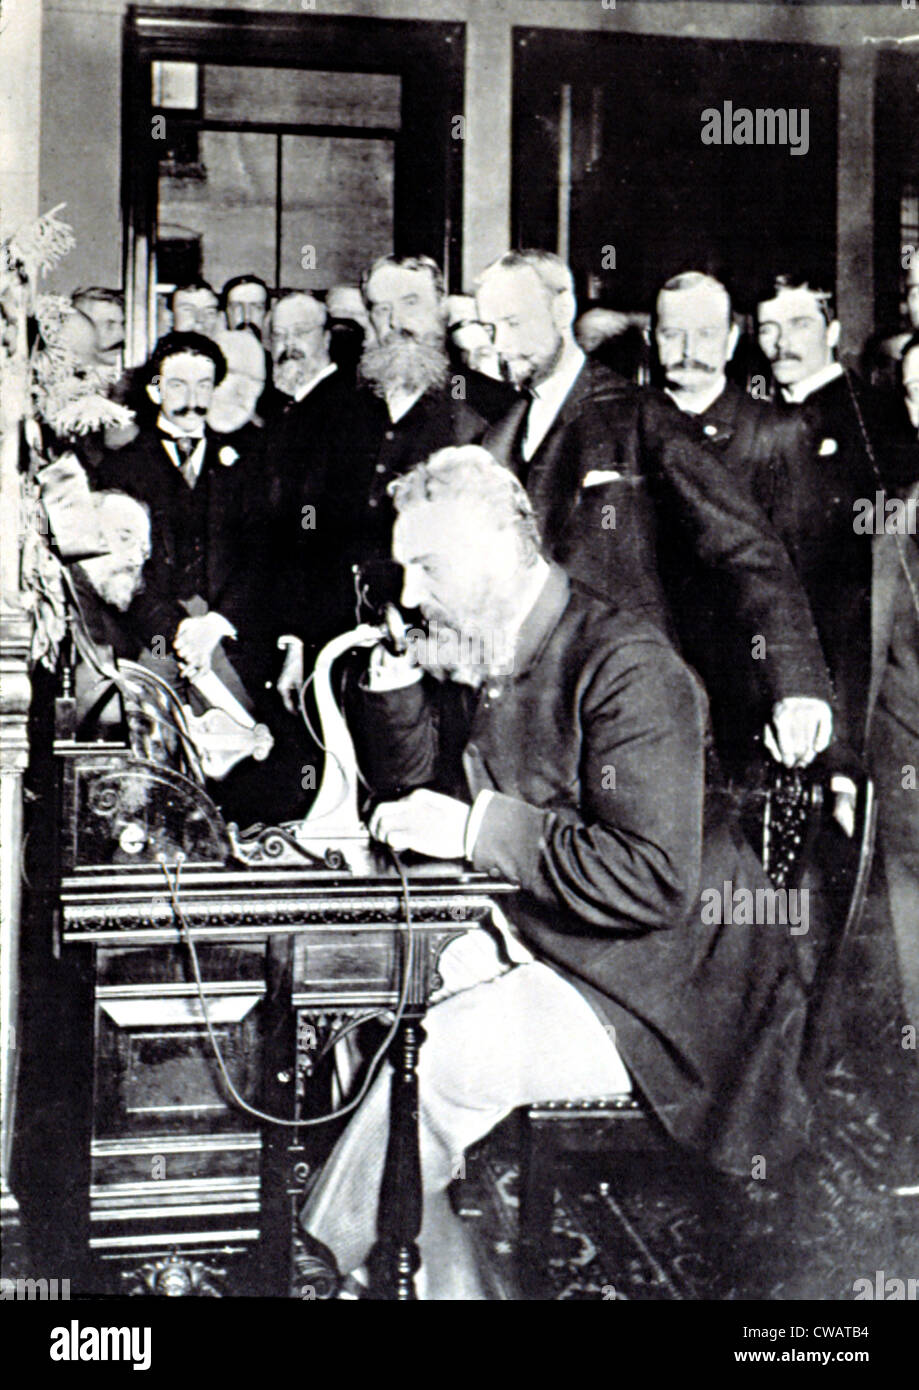 ALEXANDER GRAHAM BELL, demonstrating how to make a phone call in New ...